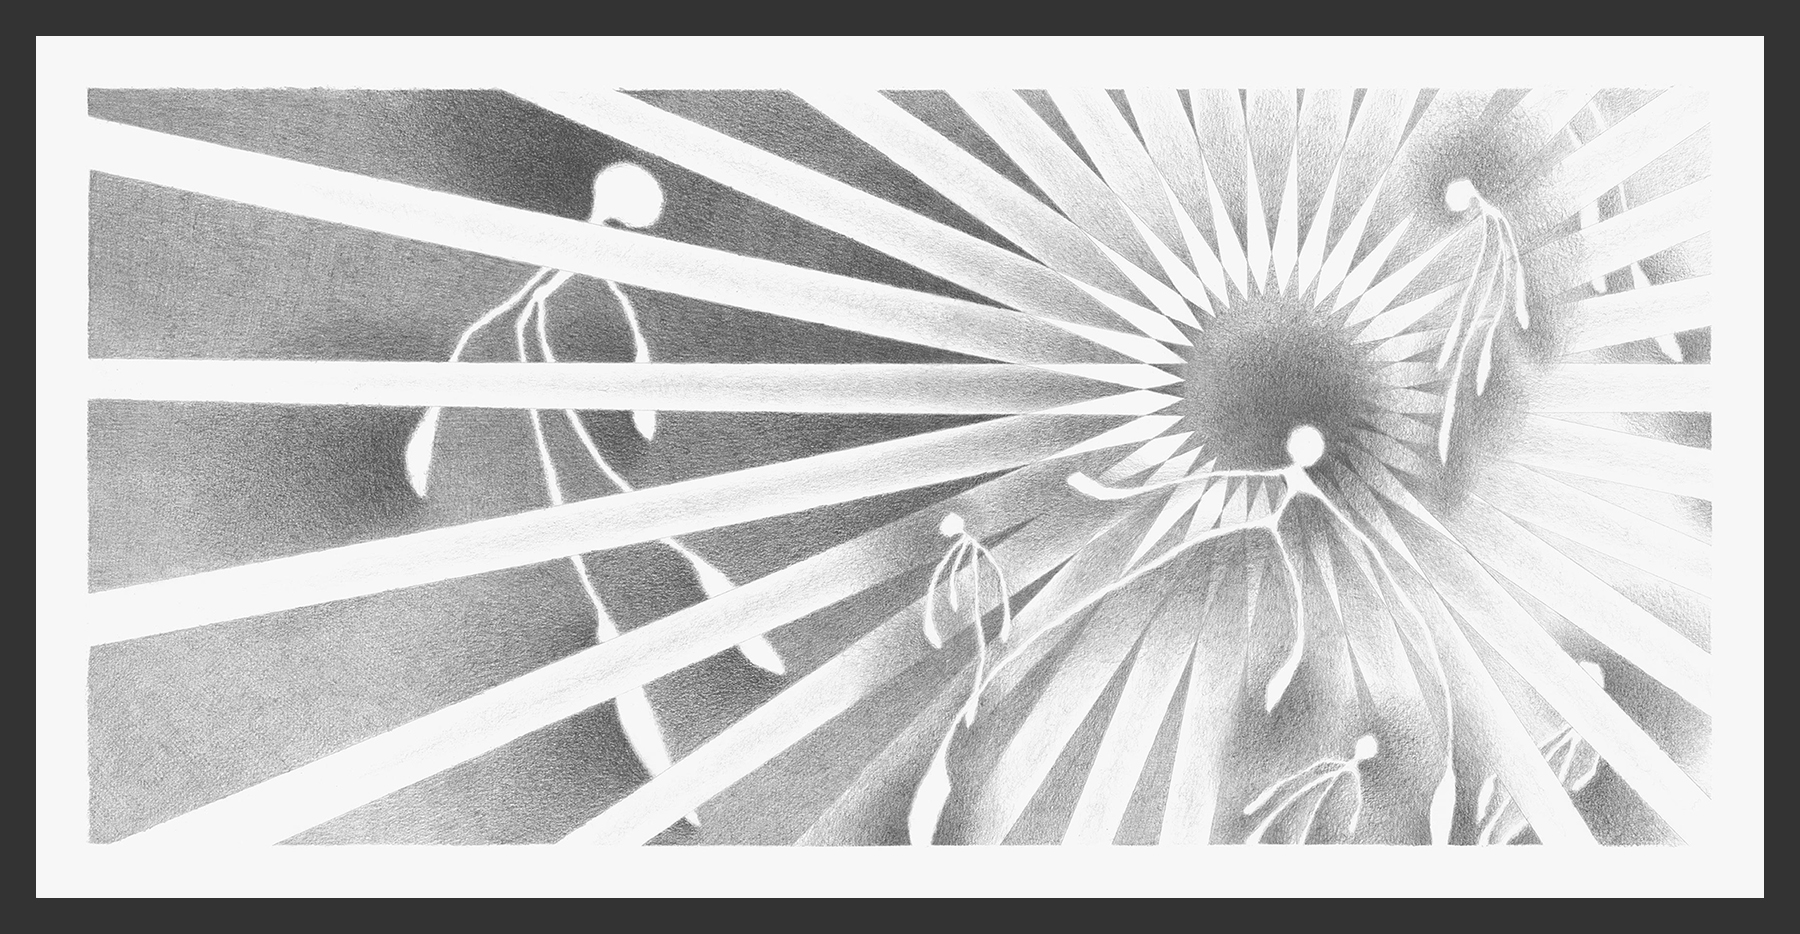 6-Website-Meditation-VI-Graphite-12x24-Astrid-Muller-Karger